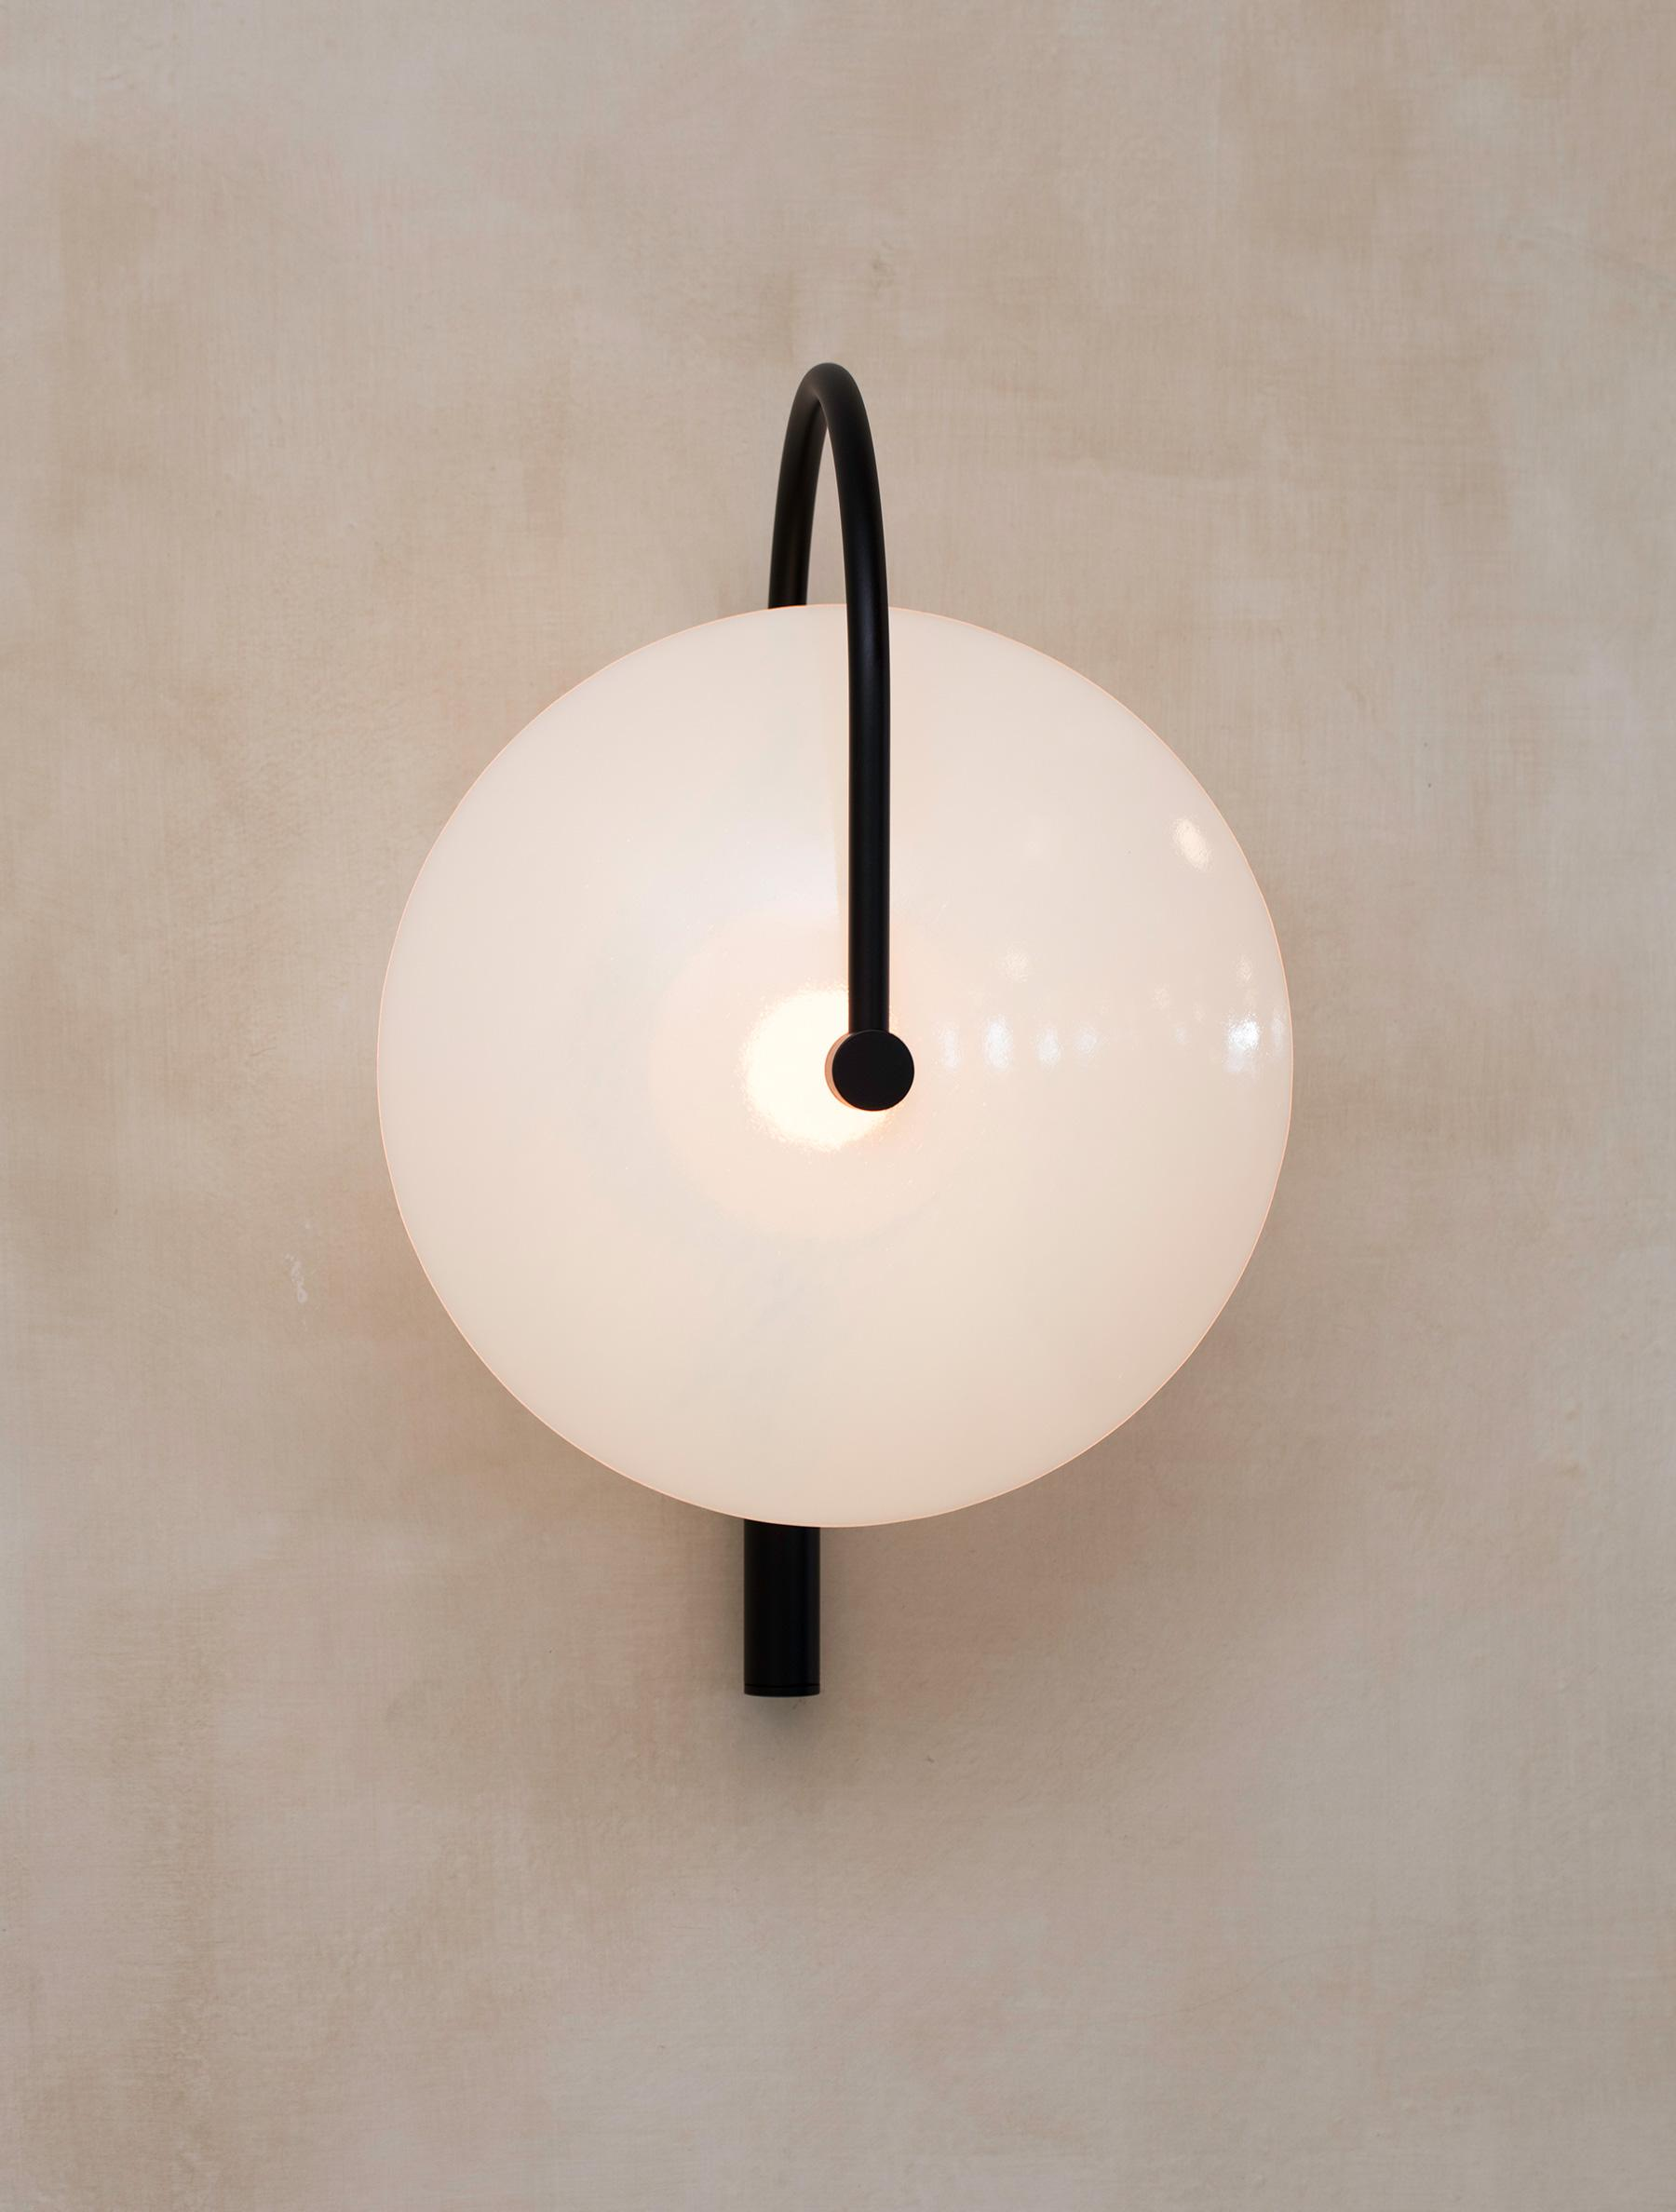 Aperture Sconce shown in Flat Black, Opal Dome